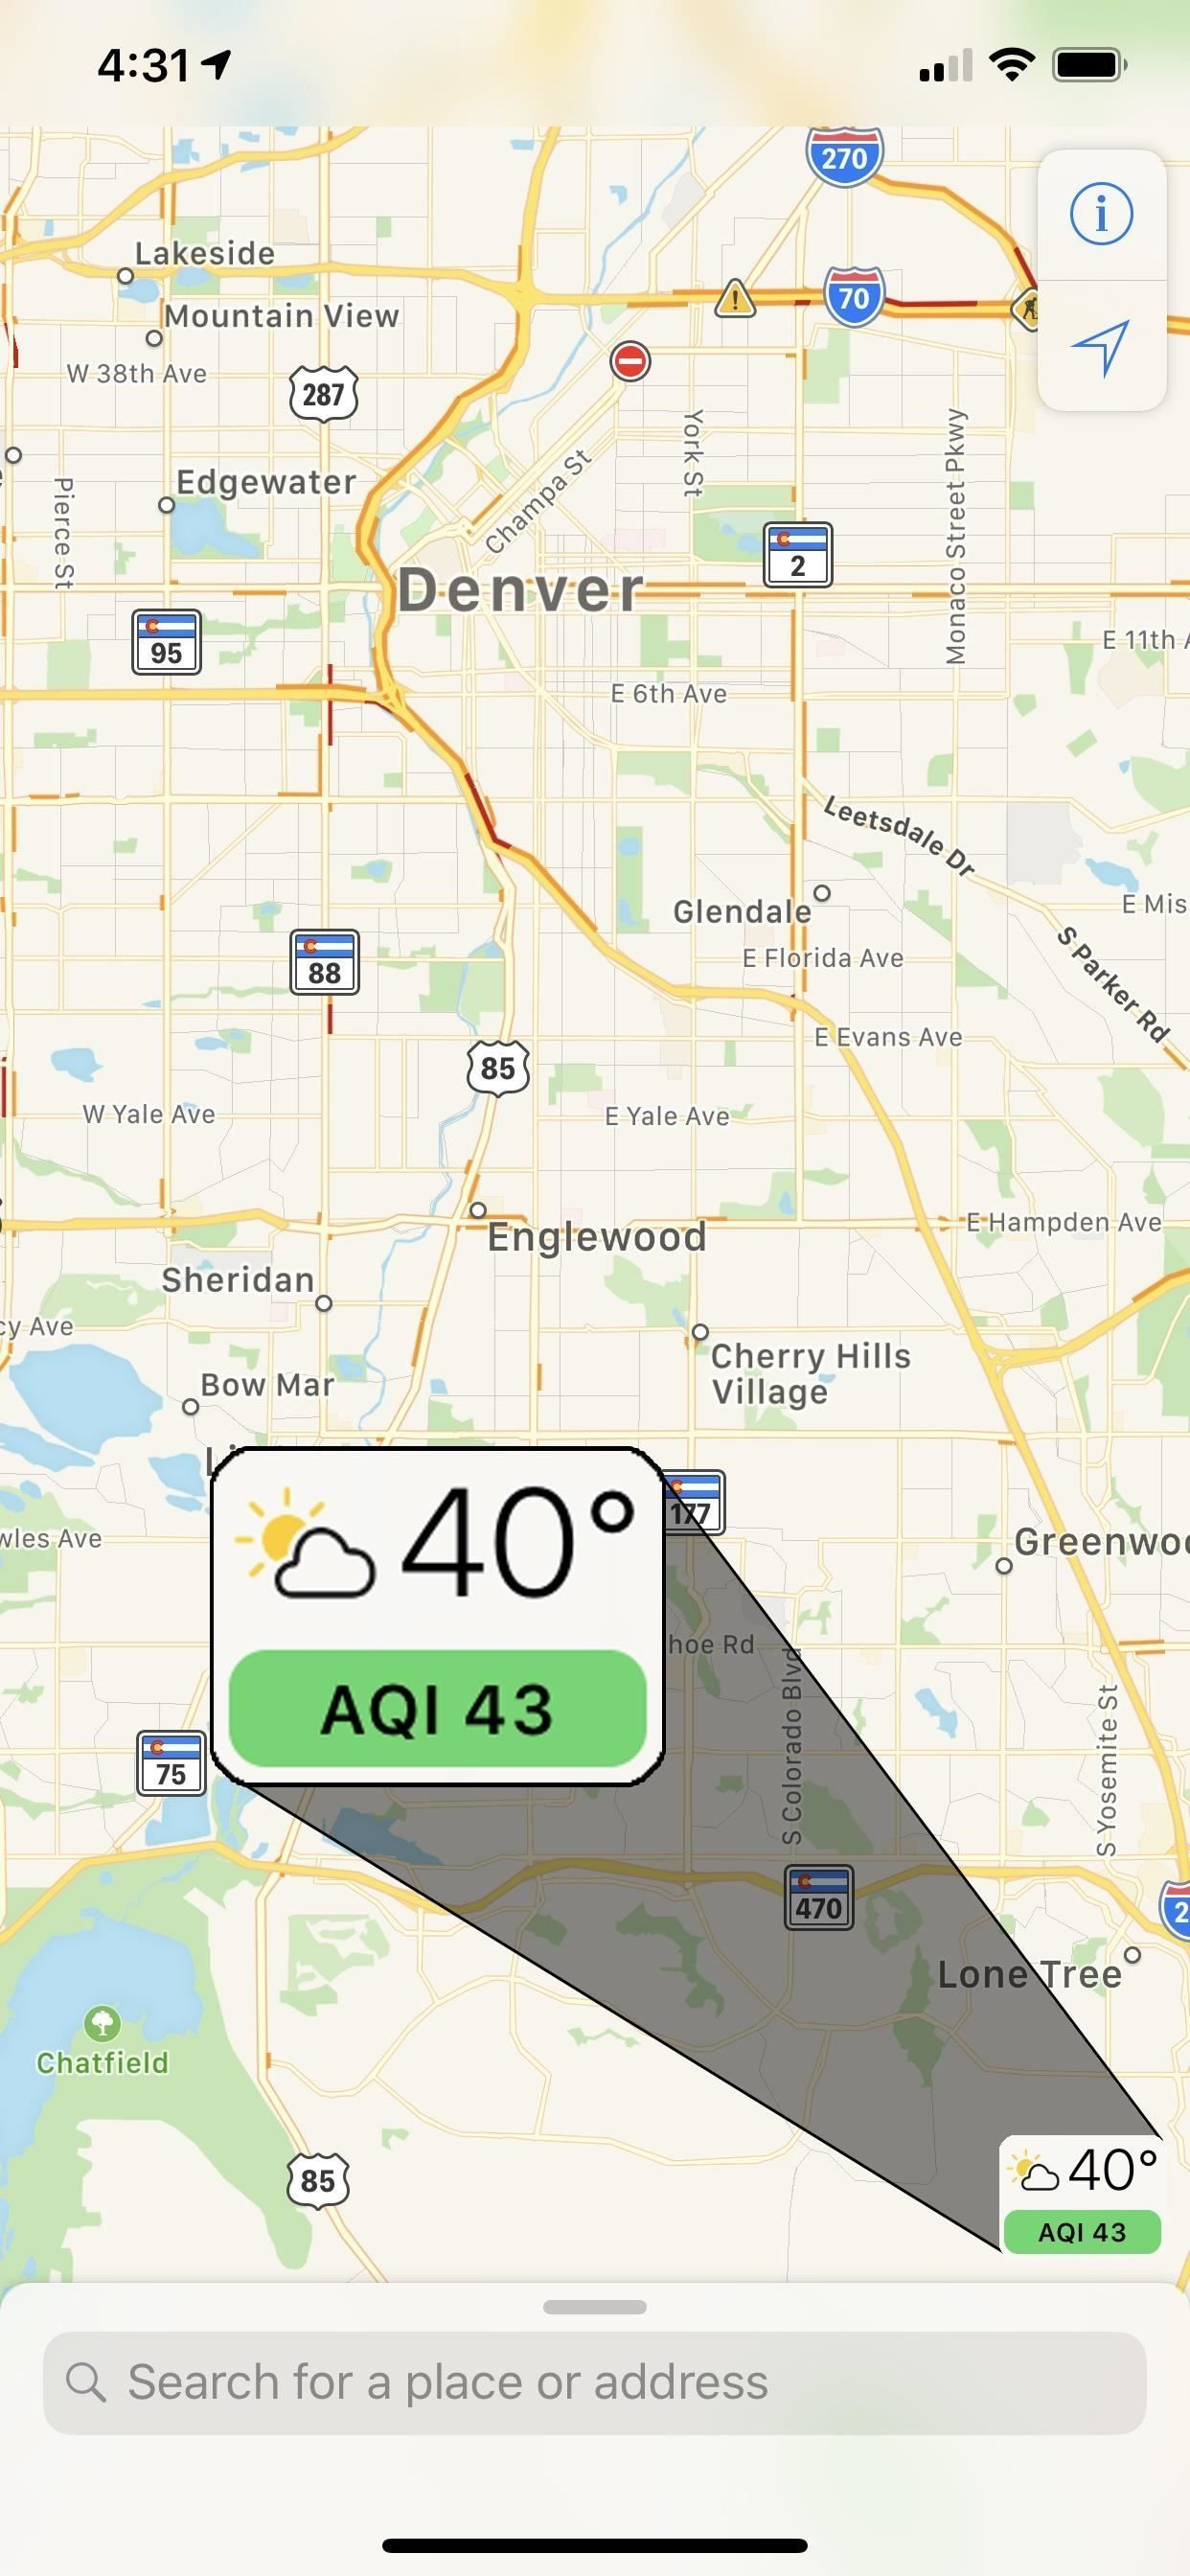 See the air quality index score in Apple Maps. This is a